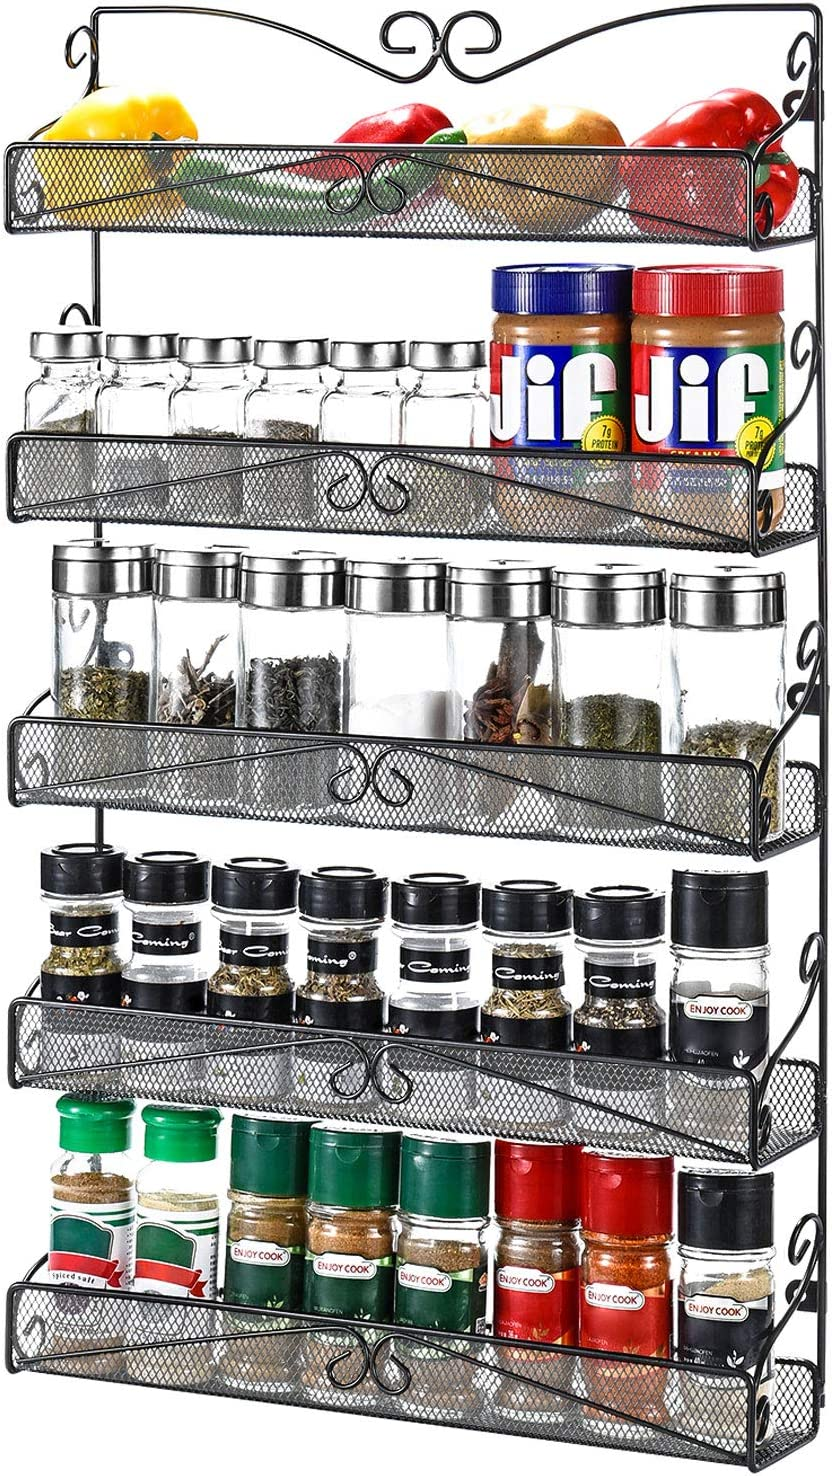 Amazon Com 3s Wall Mounted Spice Rack Organizer For Cabinet Pantry Door Kitchen Large Hanging Spice Shelf 5 Tier Black Kitchen Dining